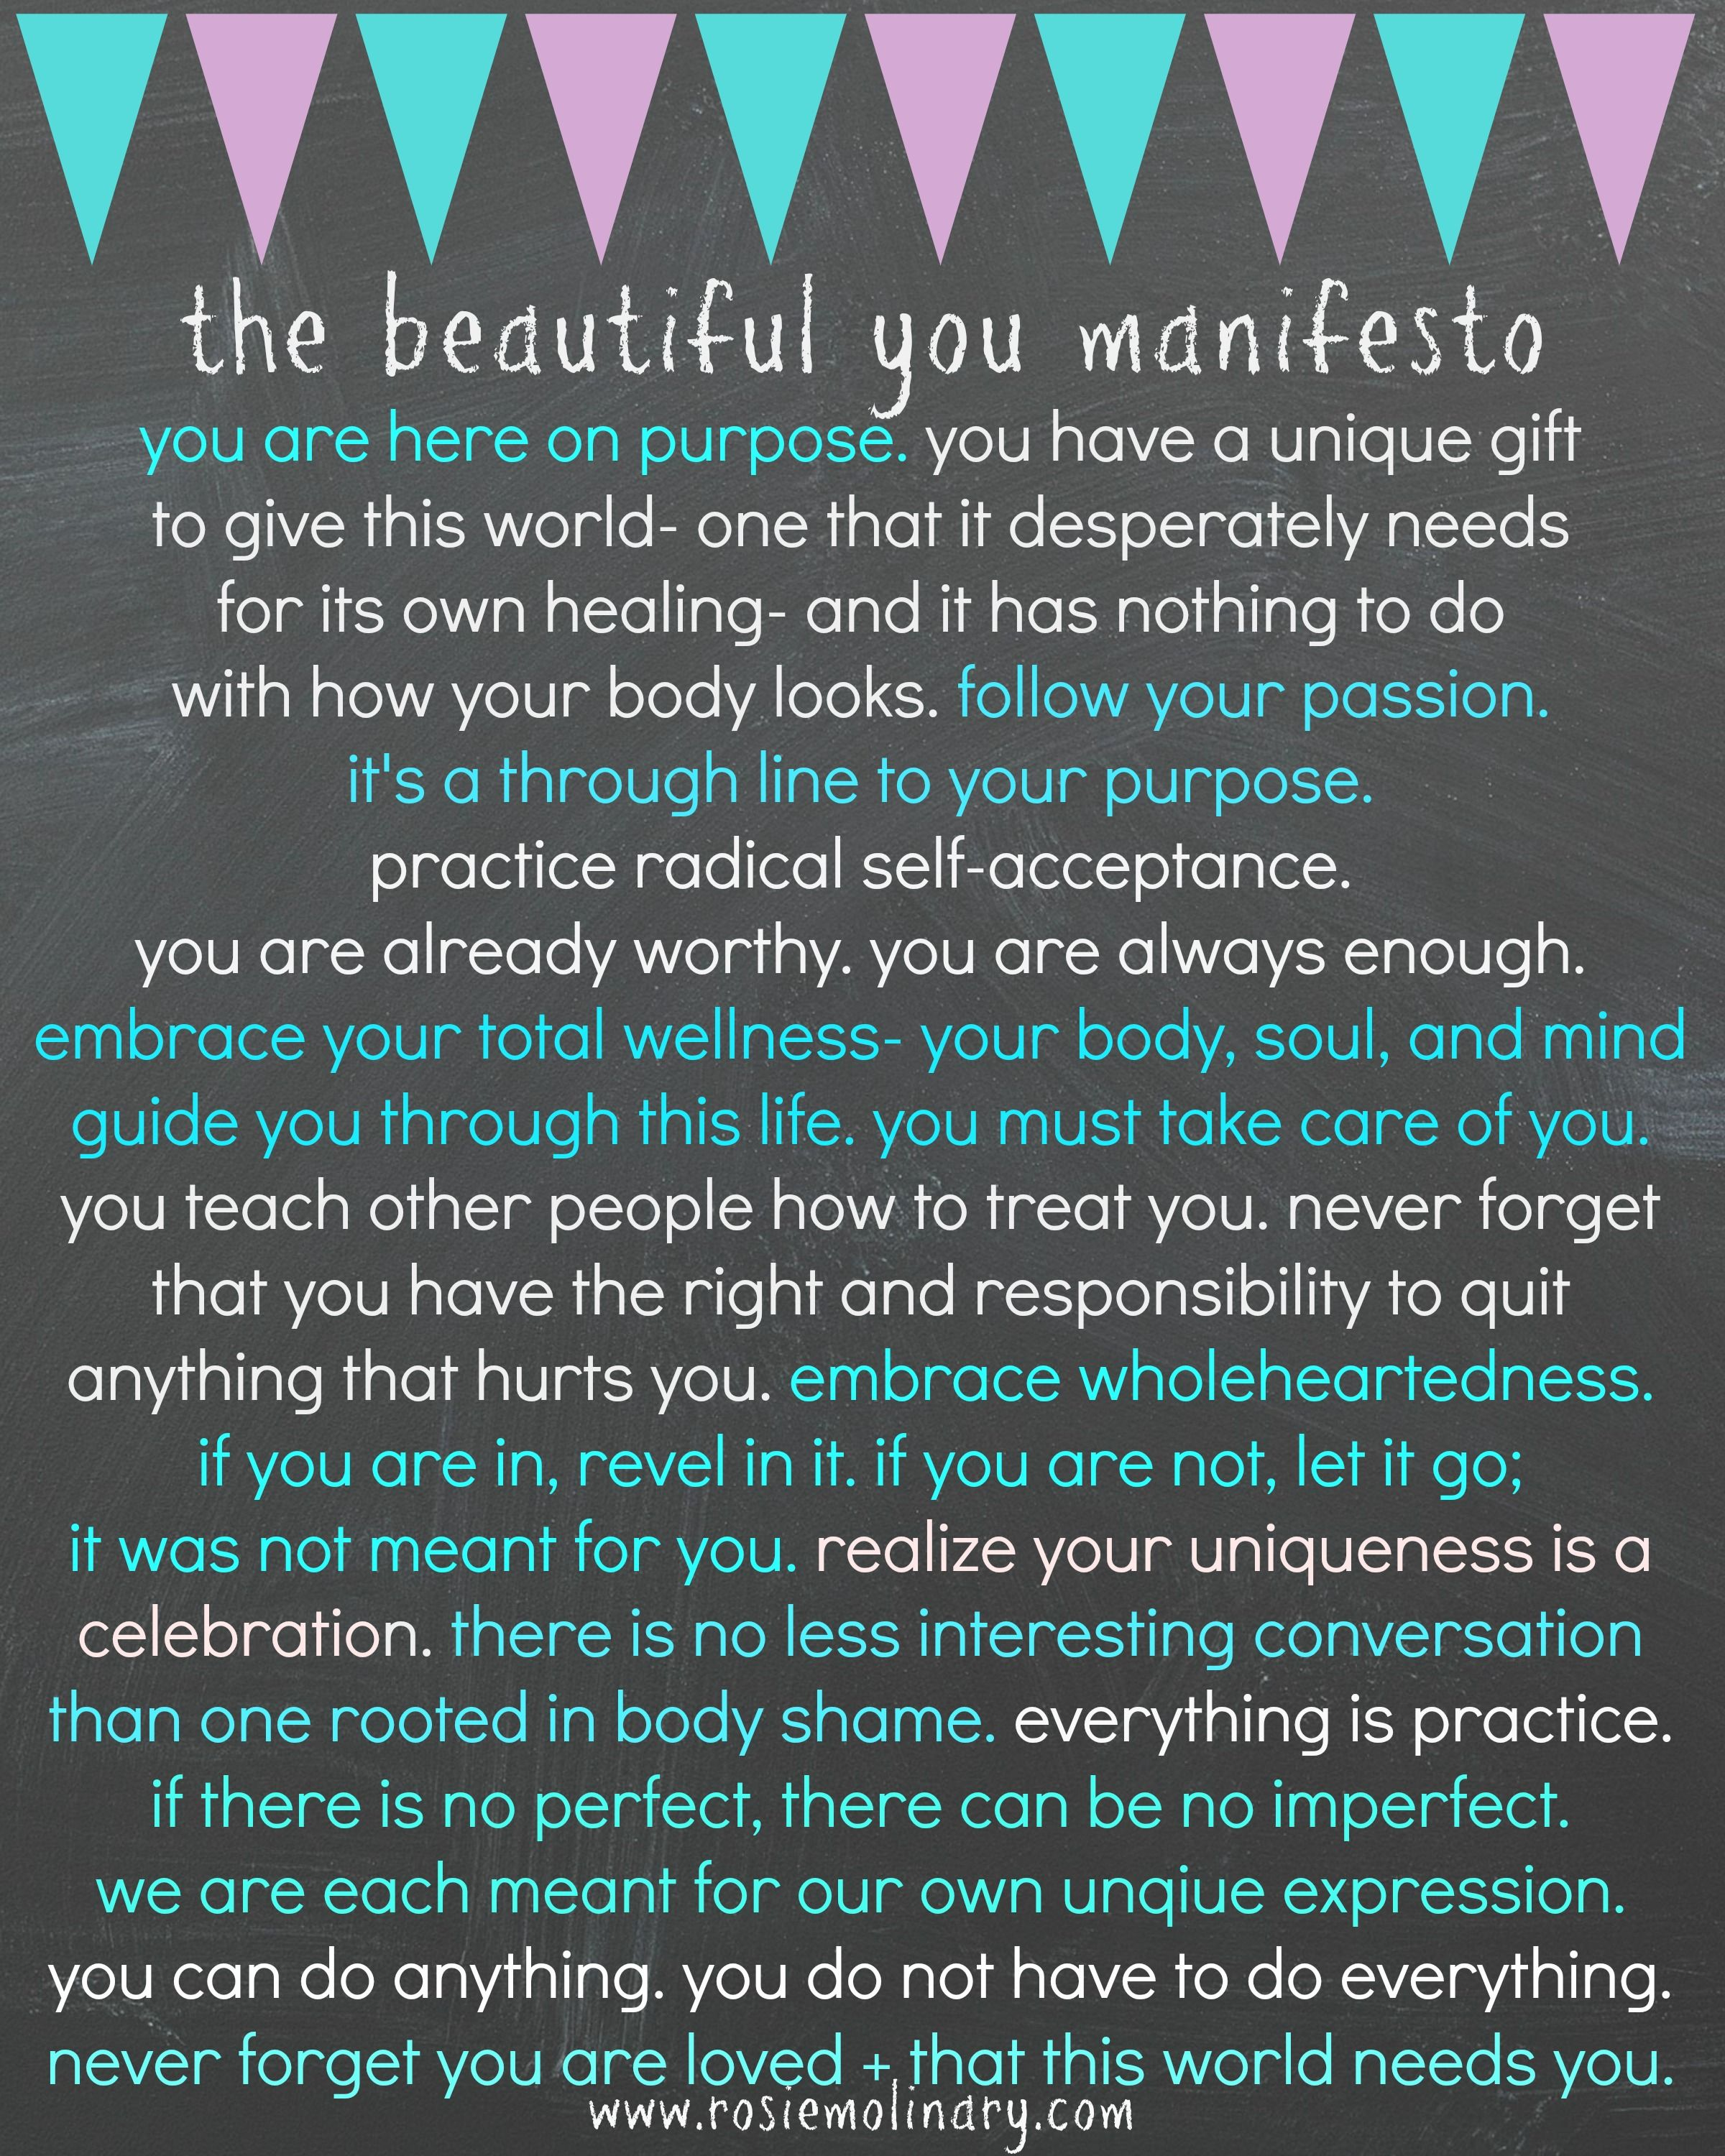 Finals Quotes Awesome Beautiful You Manifesto Final  True Wisdom  Pinterest  Finals . Review